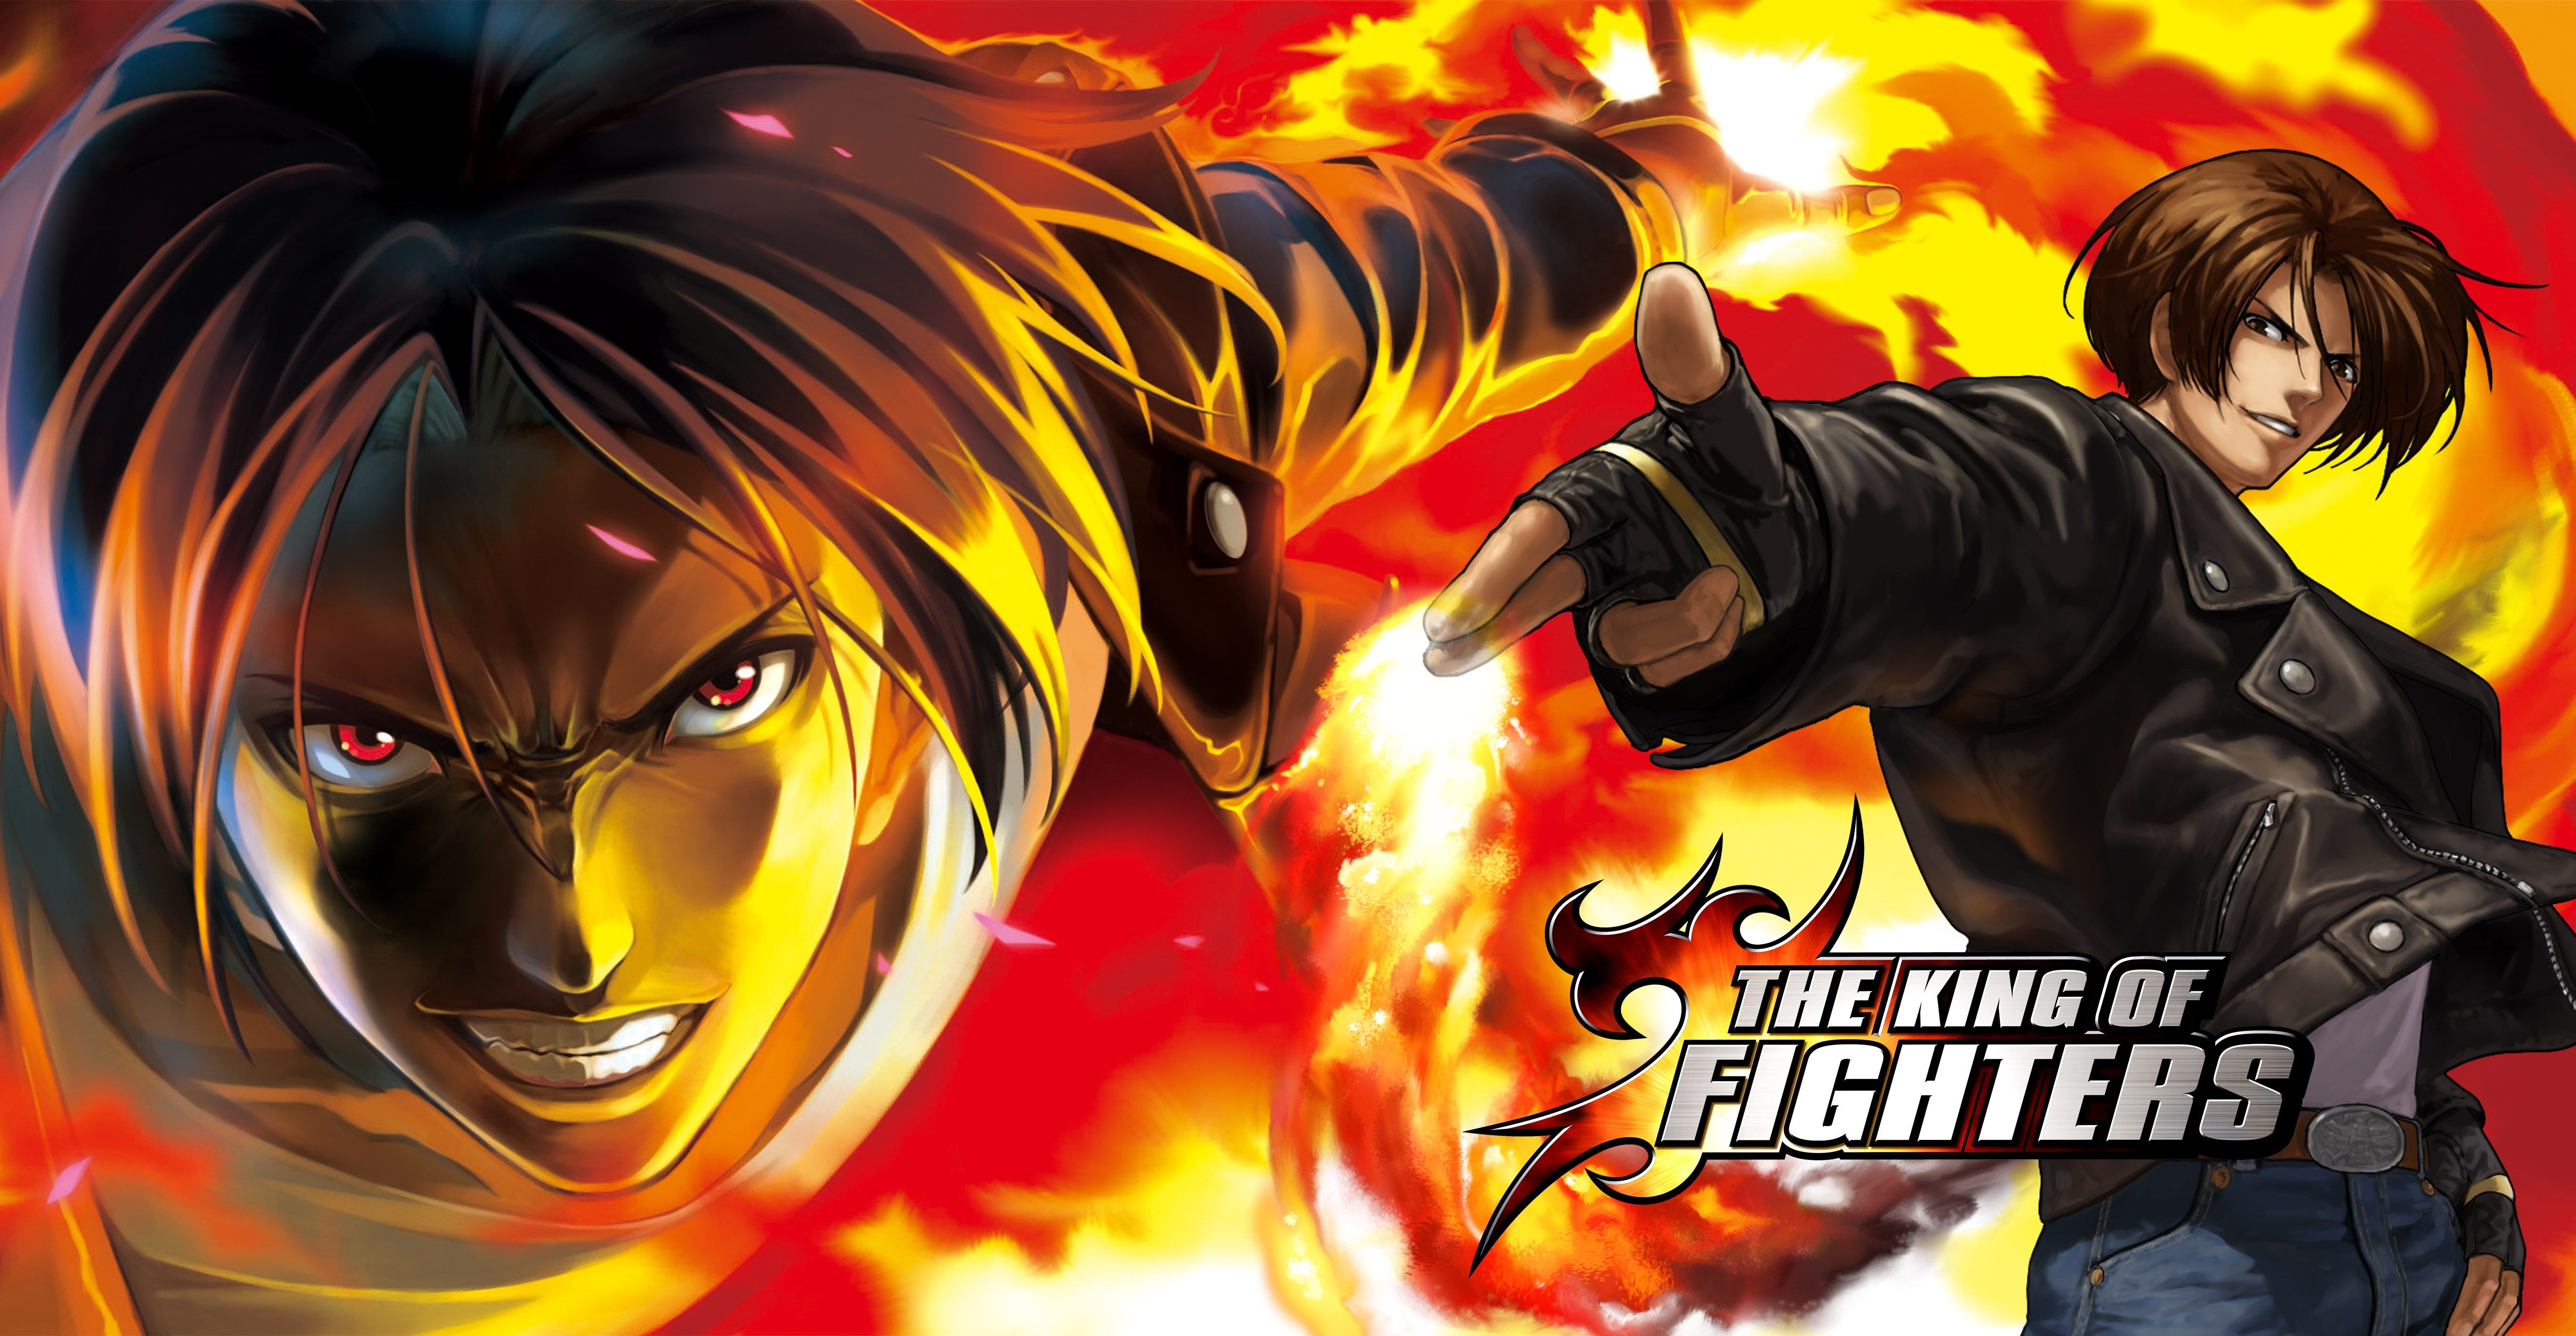 The King Of Fighters Wallpaper Posted By Zoey Simpson